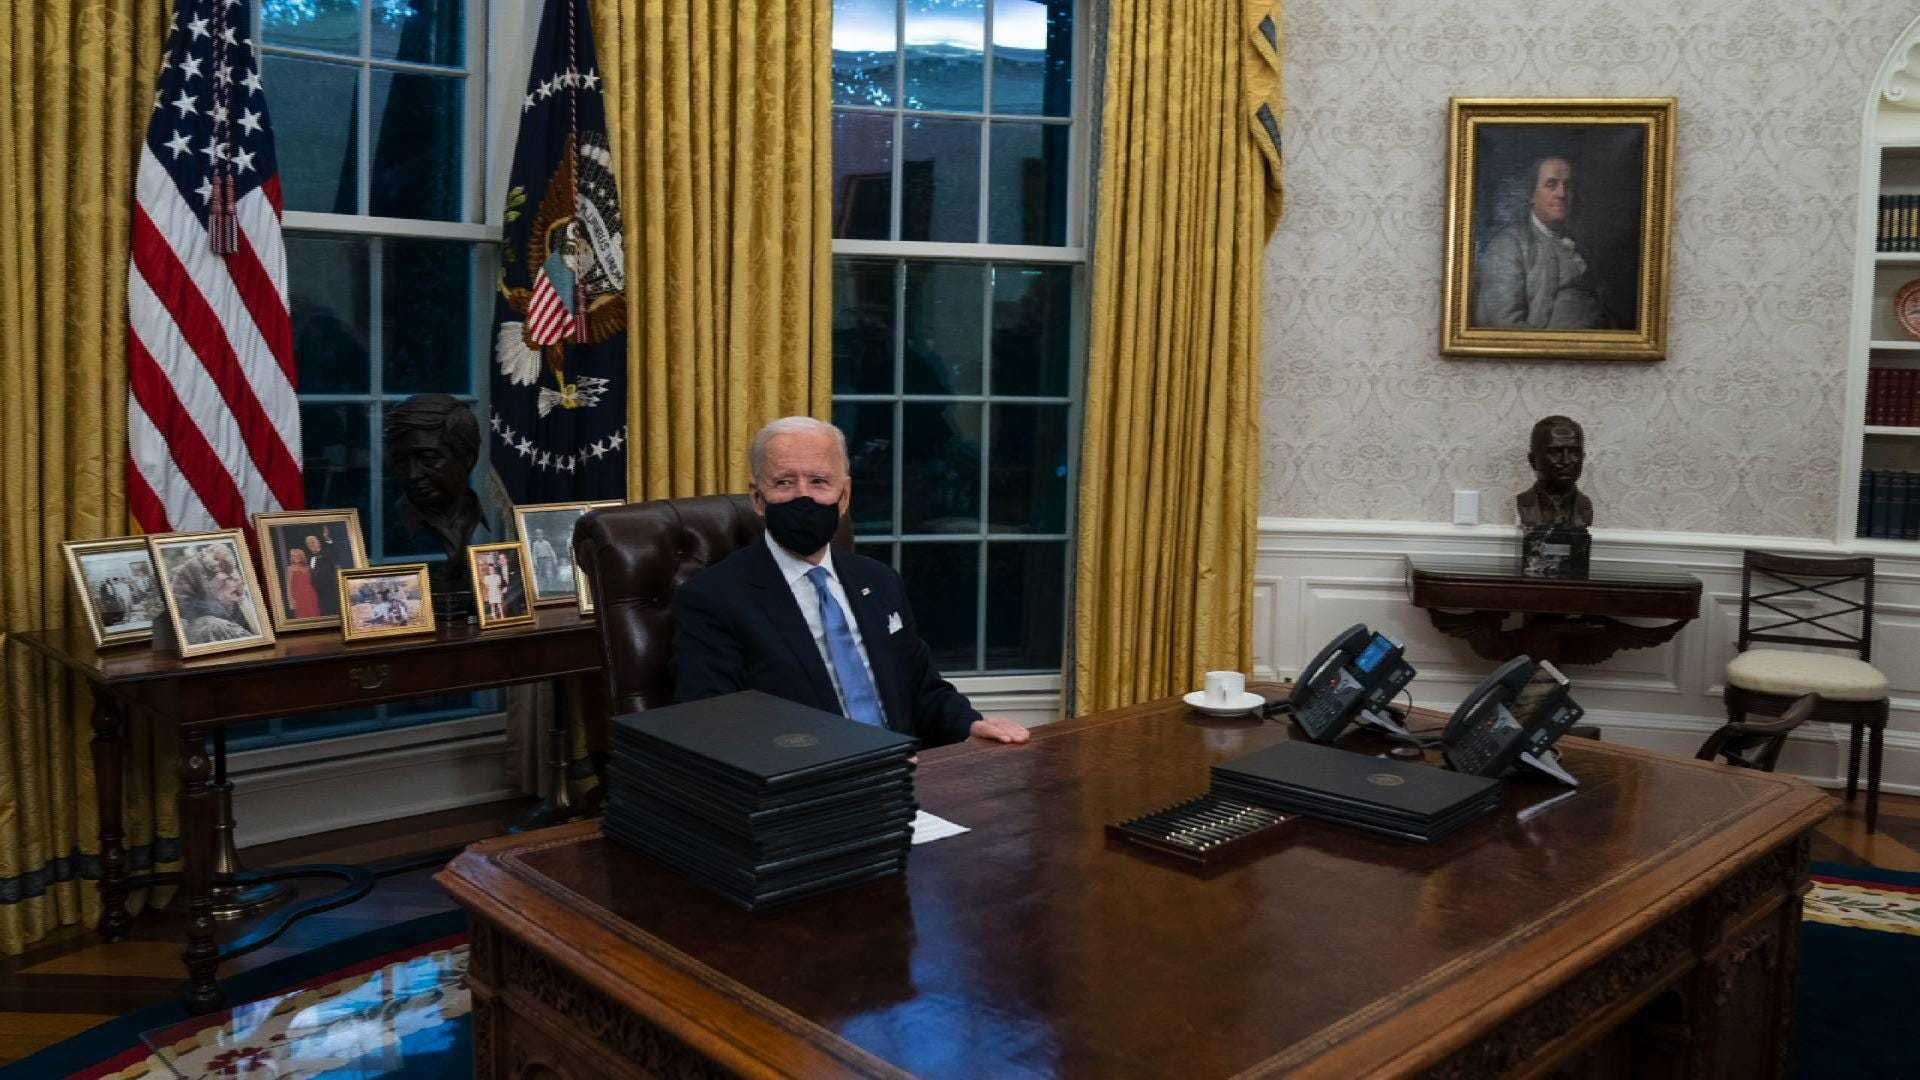 Biden Oval Office Wallpaper 2